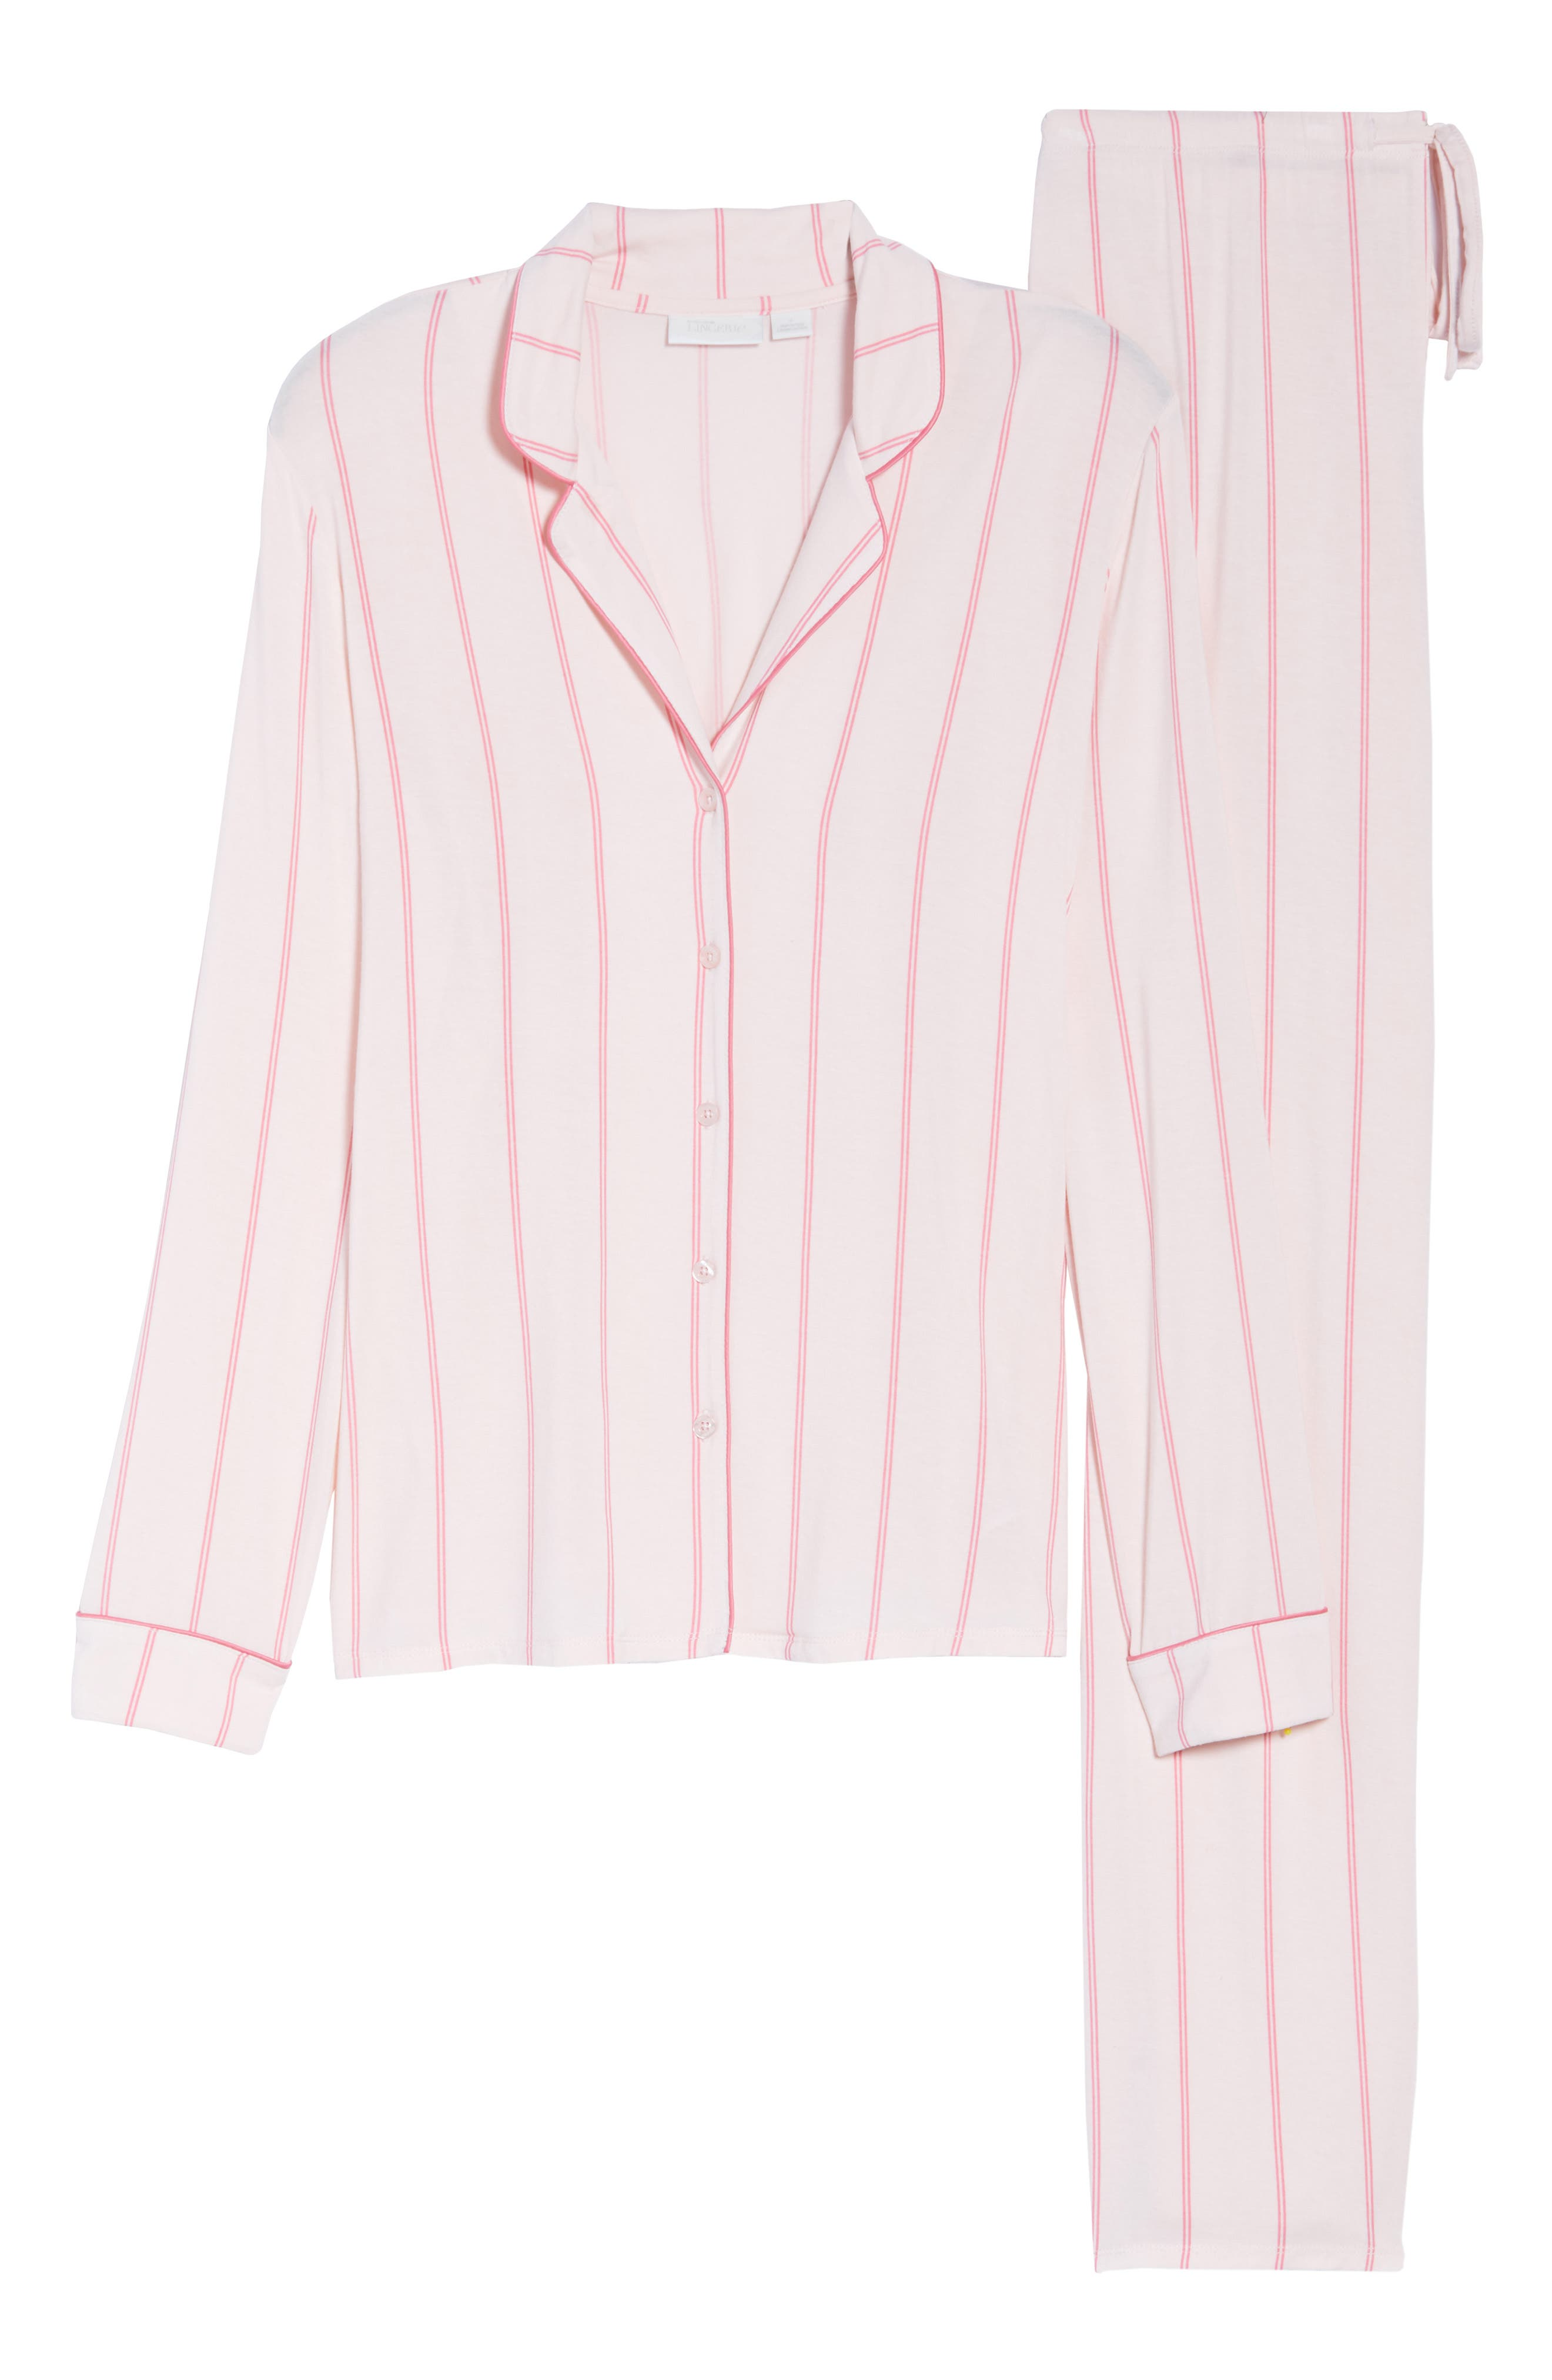 NORDSTROM LINGERIE, Moonlight Pajamas, Alternate thumbnail 6, color, PINK CRYSTAL MICRO STRIPE